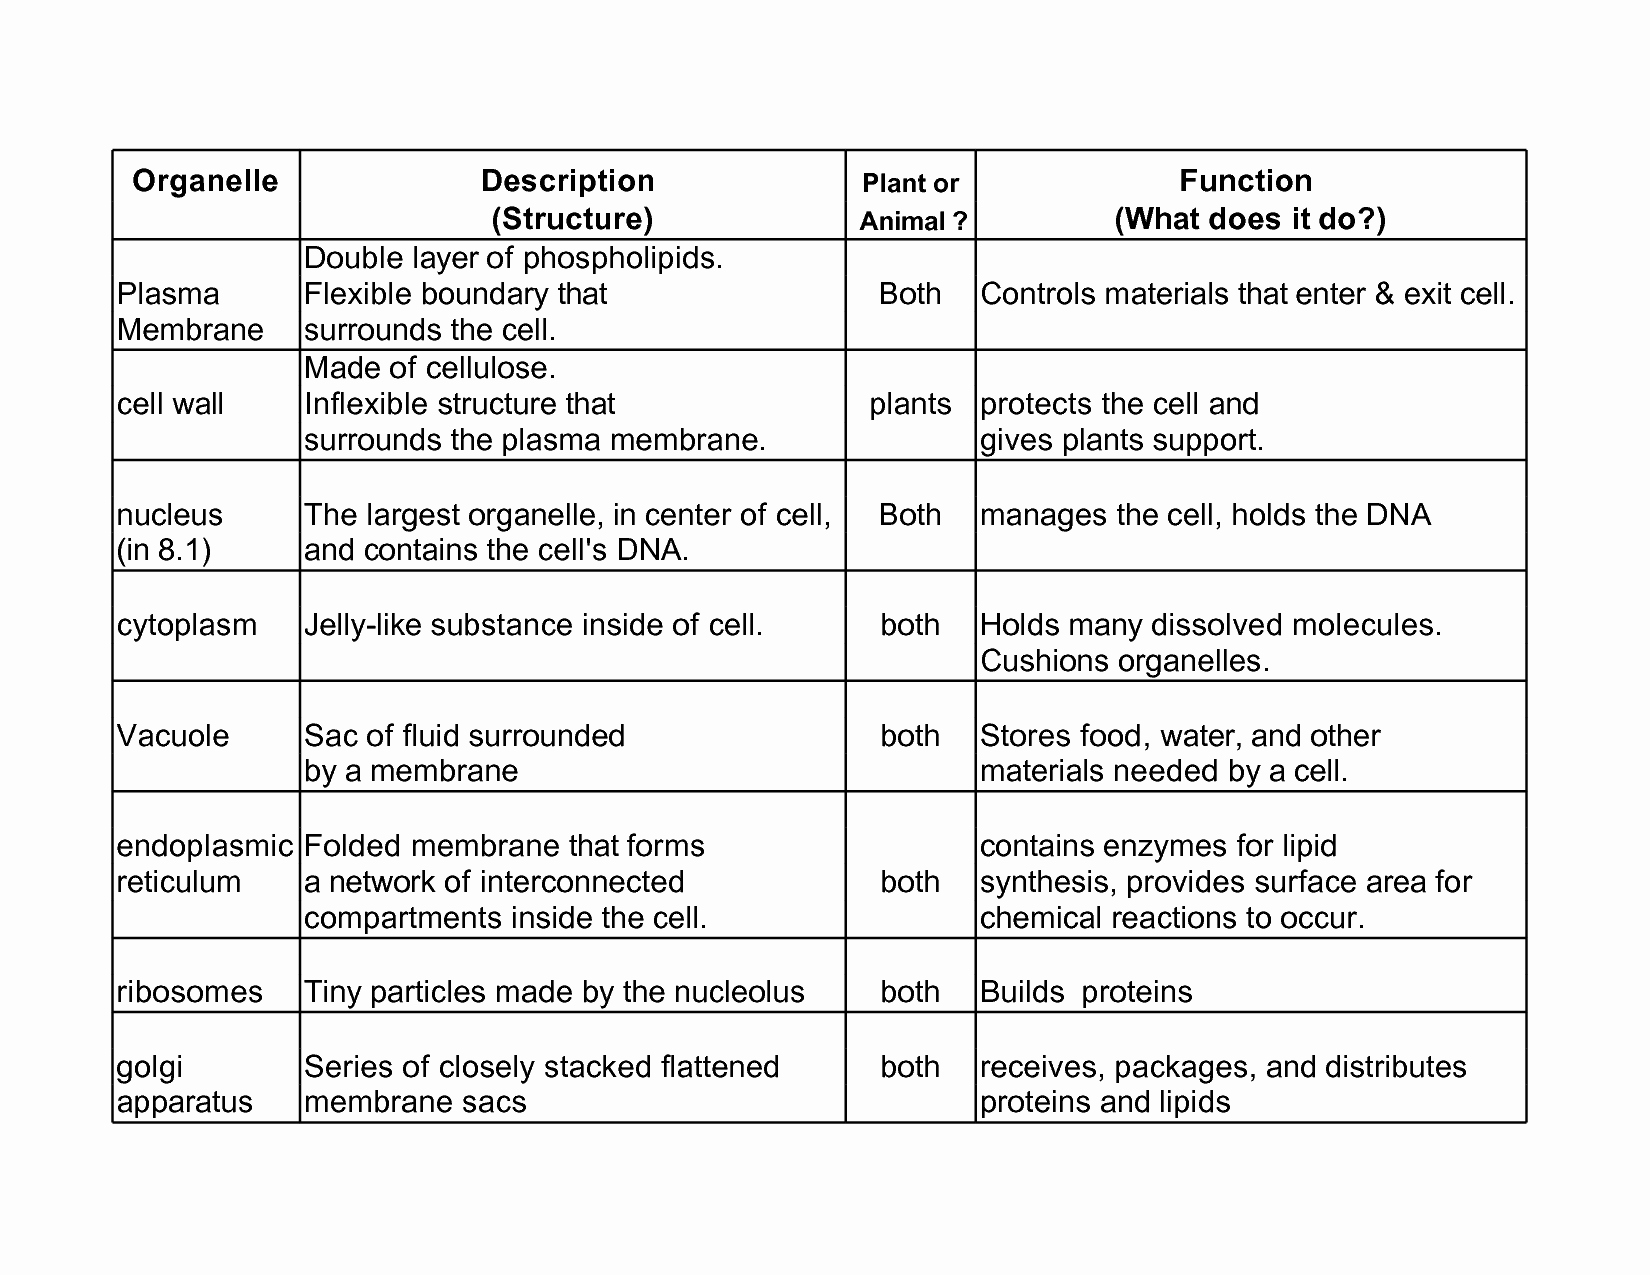 Function Of the organelles Worksheet Elegant Cellular organelle Structure and Function Essay Sample